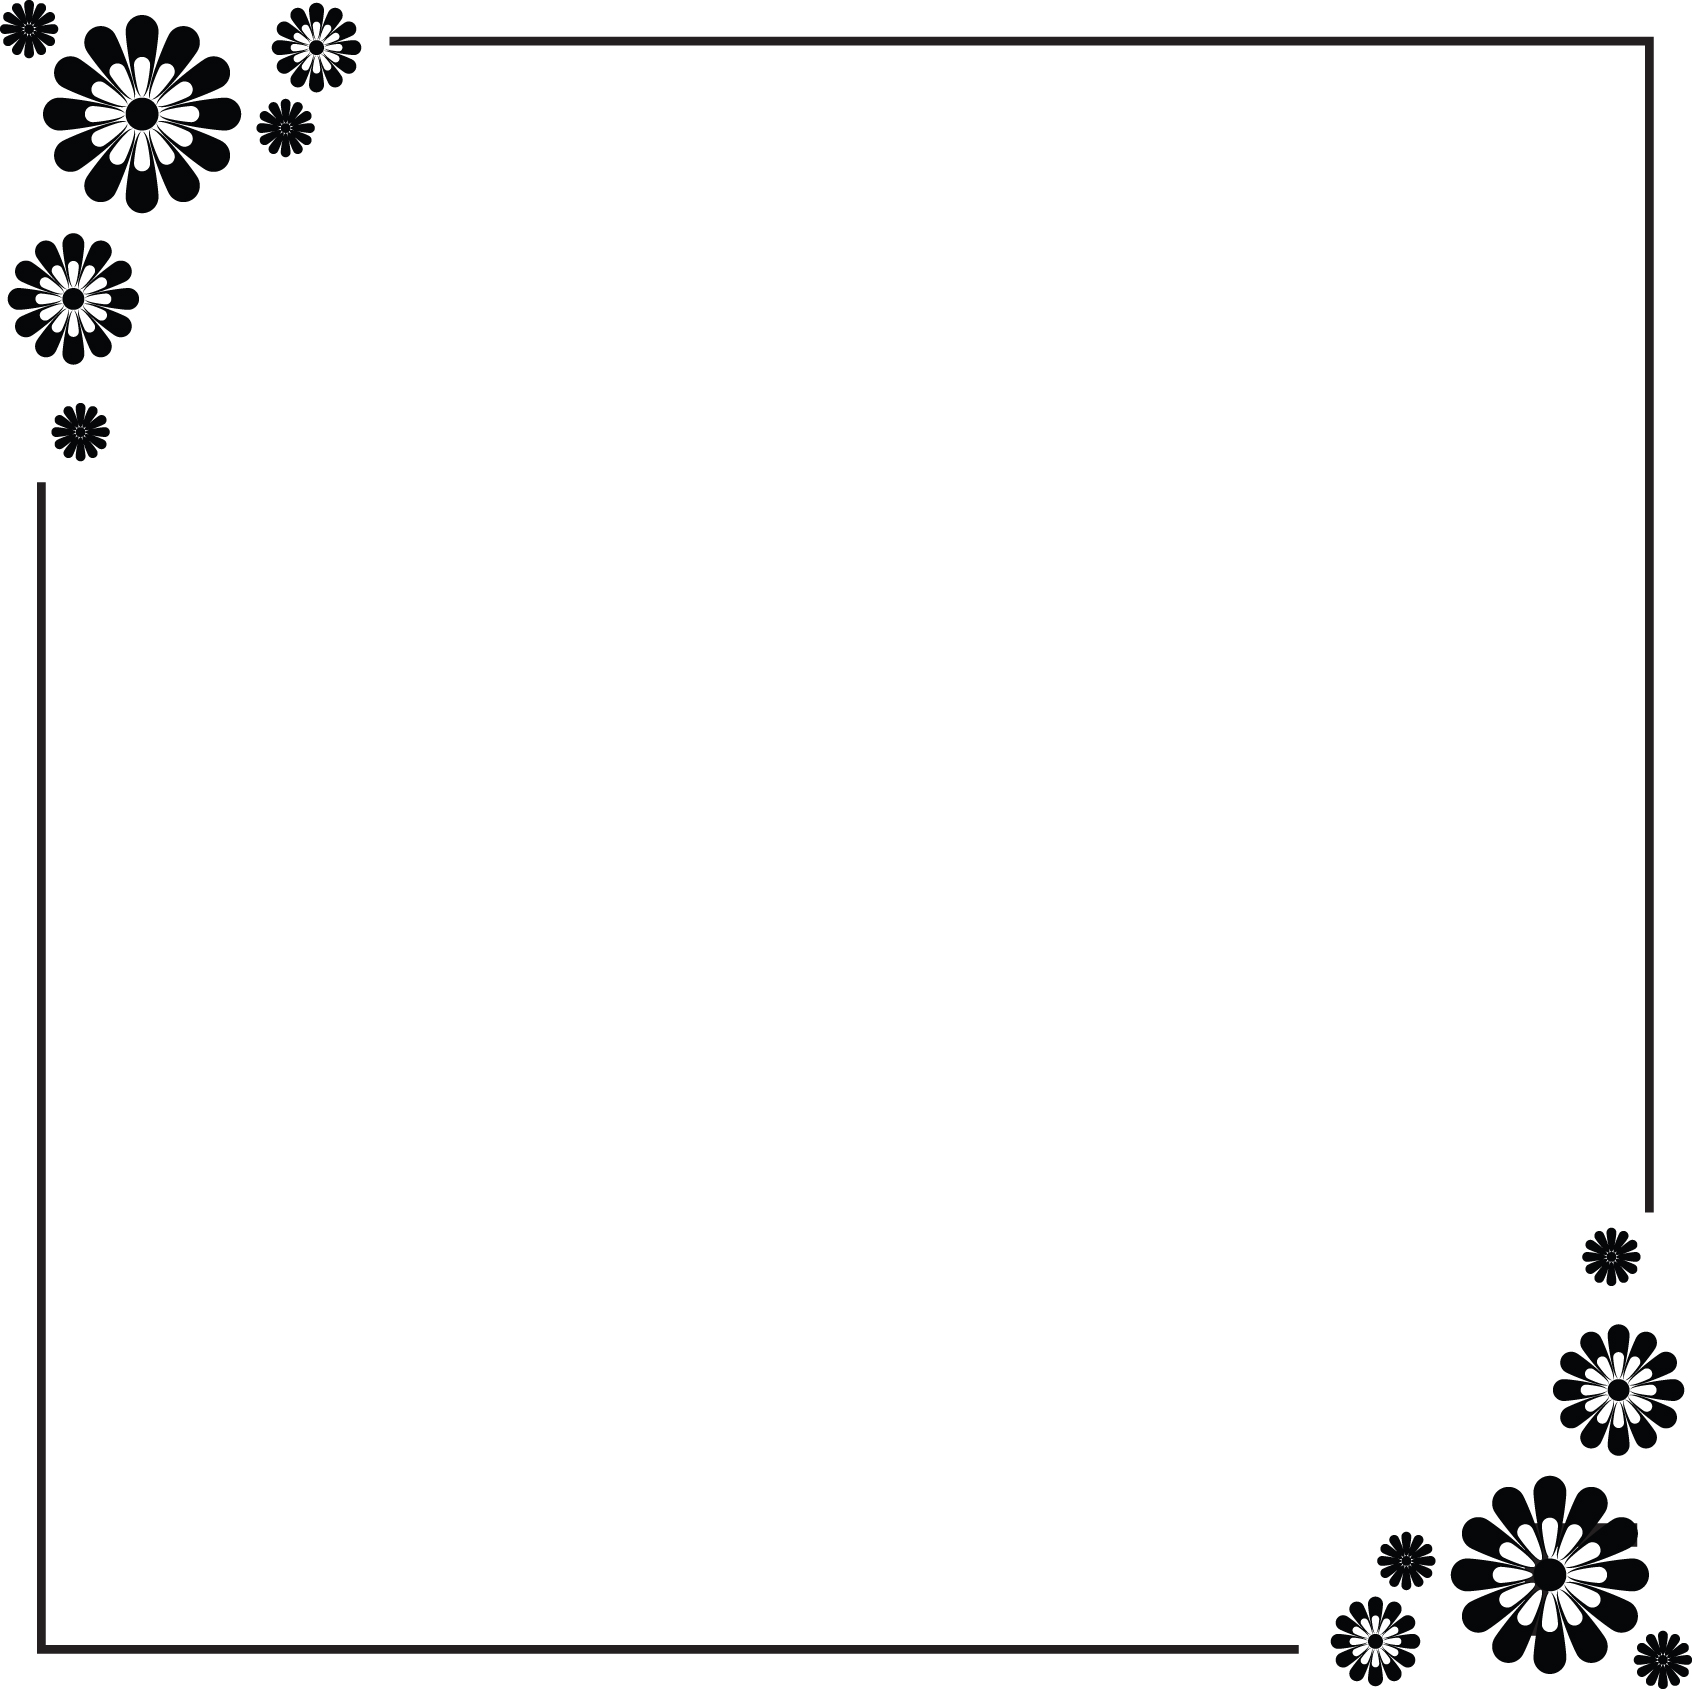 12 Simple Border Design Paper Images - Flower Border ...